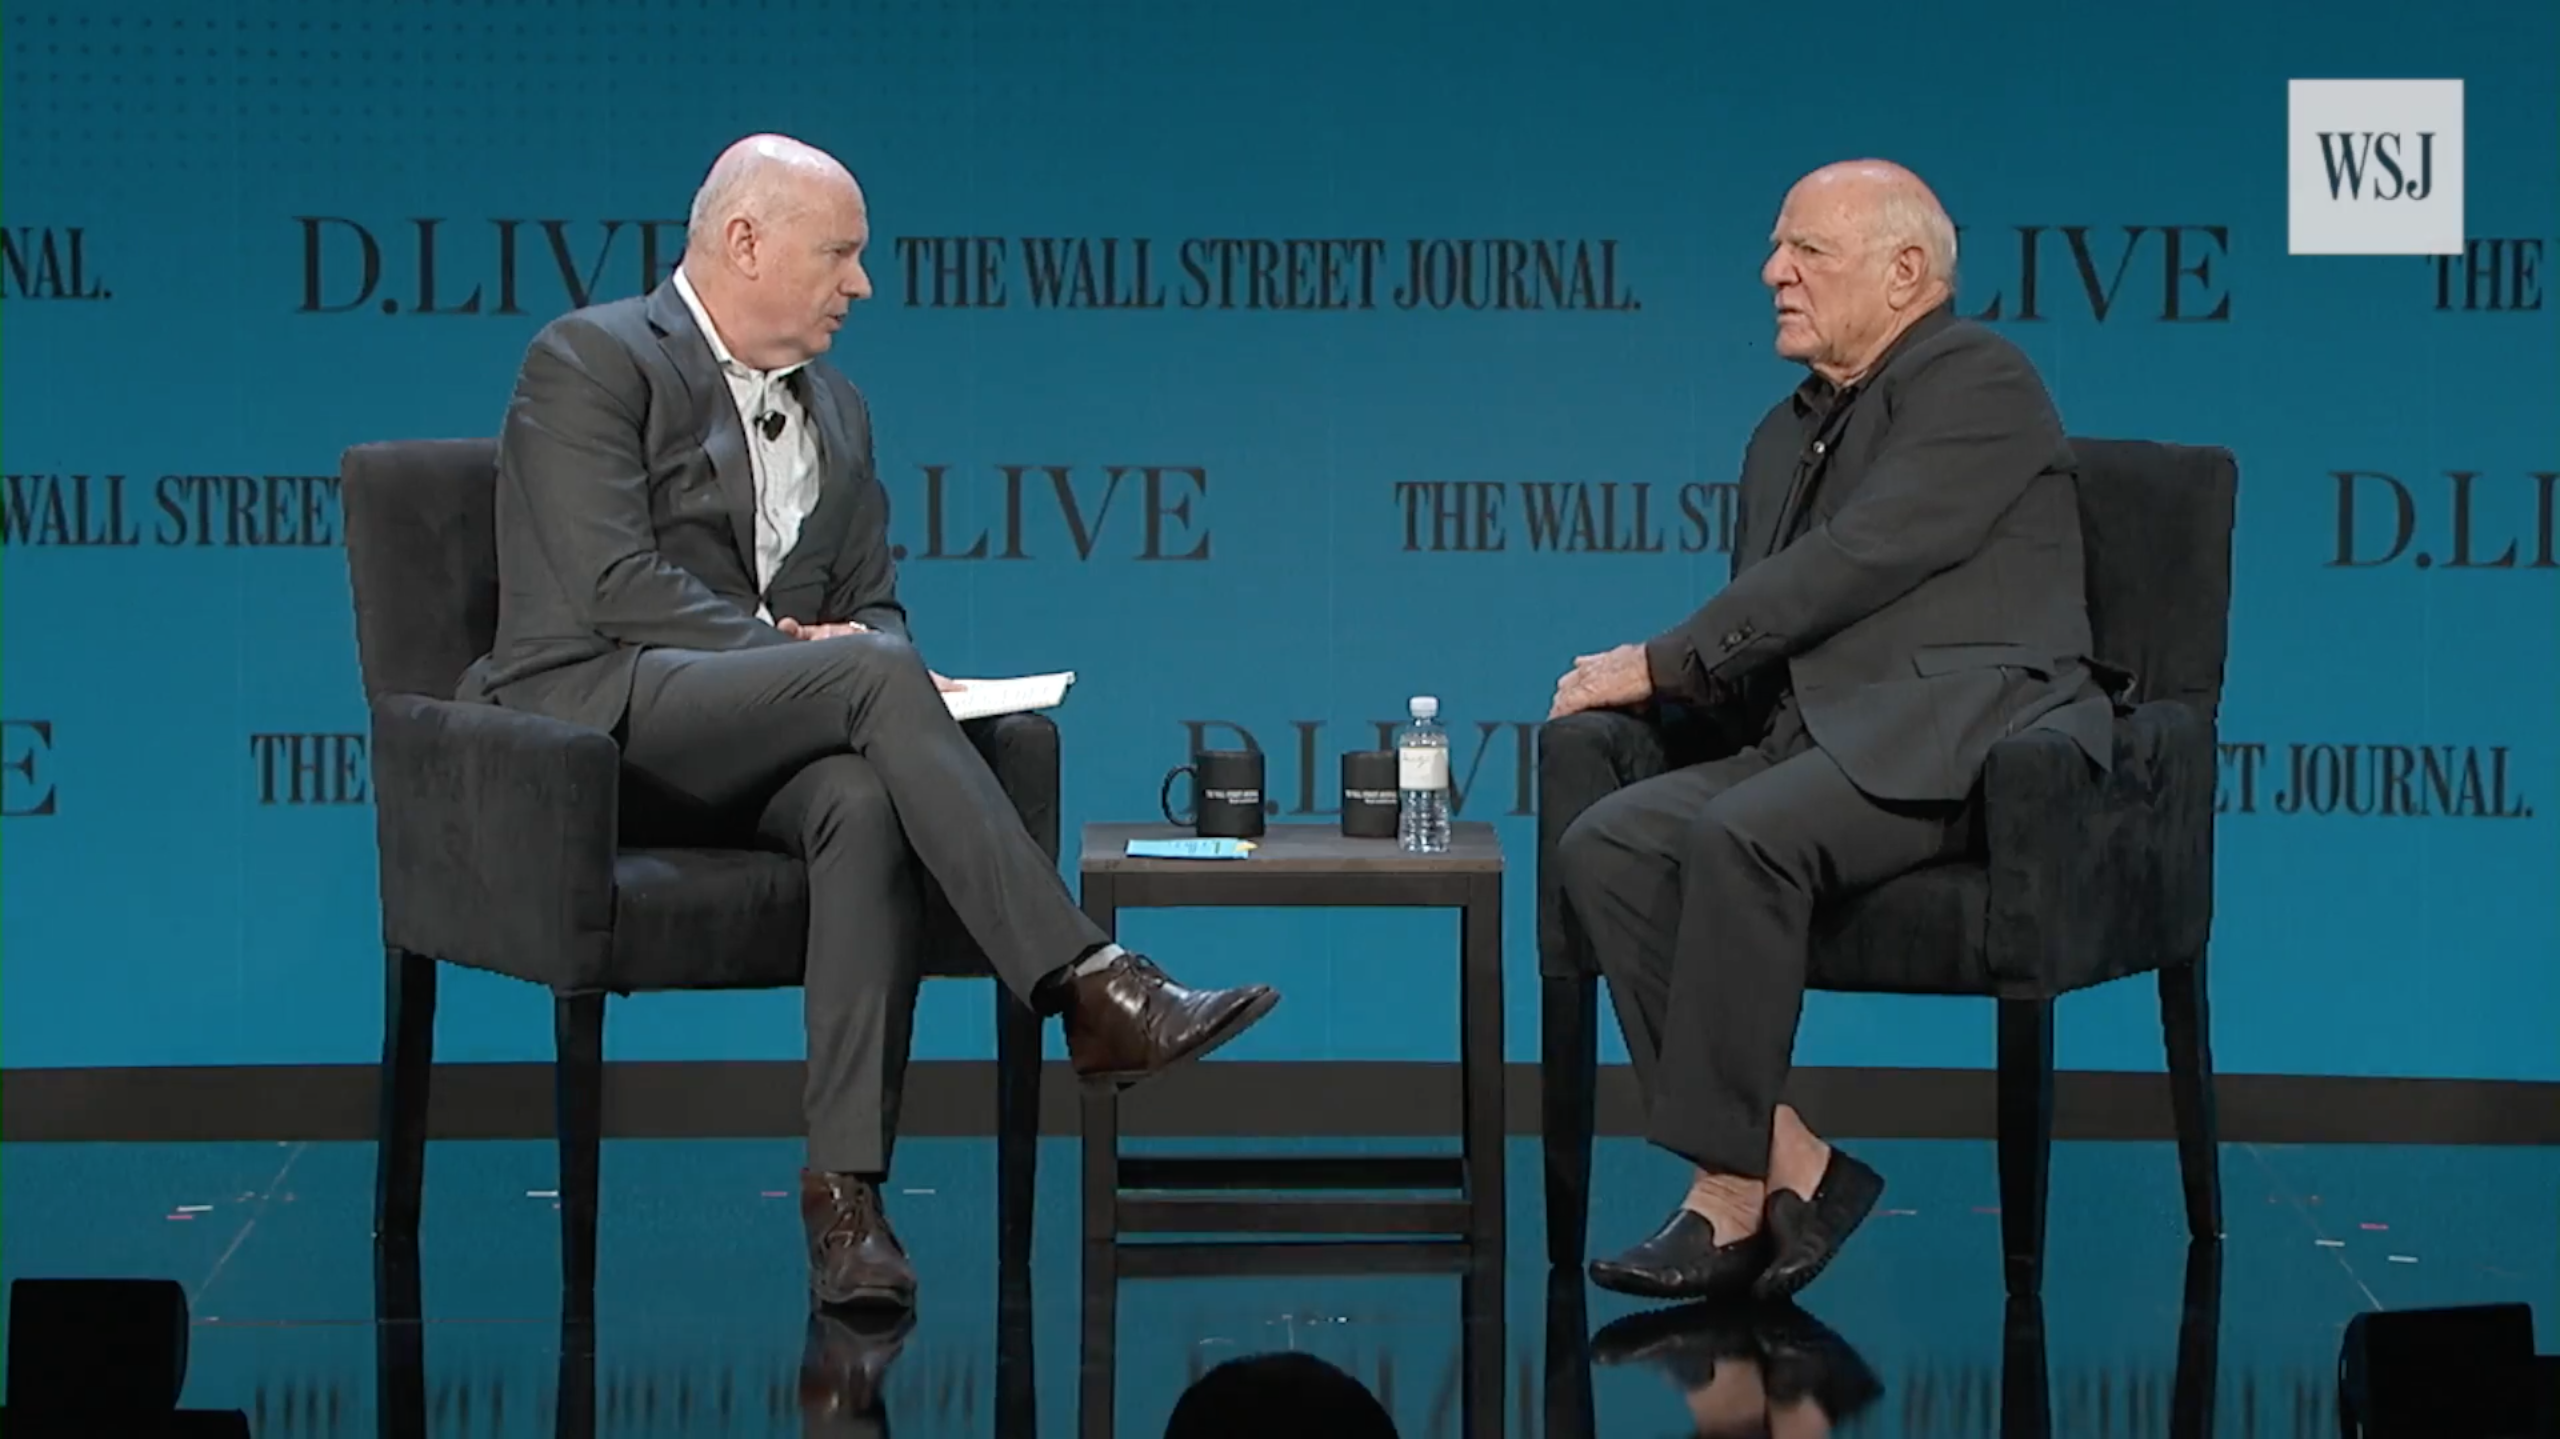 Barry Diller Talks 'Wildly Speculative' Tech Valuations At Wall Street Journal Conference